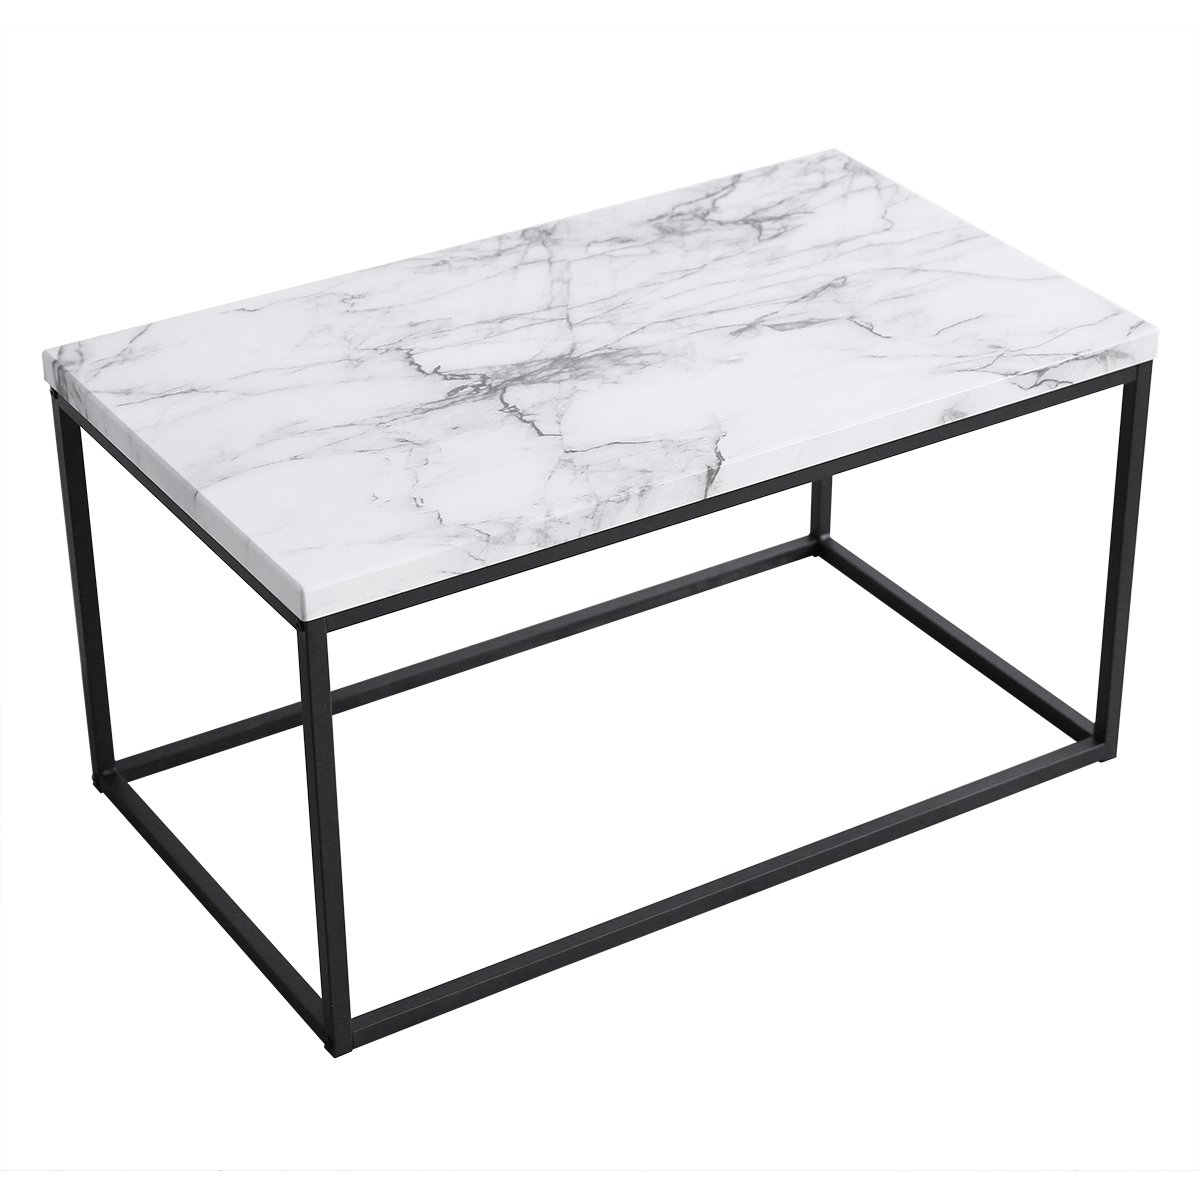 roomfitters white marble print coffee table upgraded room essentials mixed material accent water resistant version rectangular cocktail with black metal box frame restaurant lamps